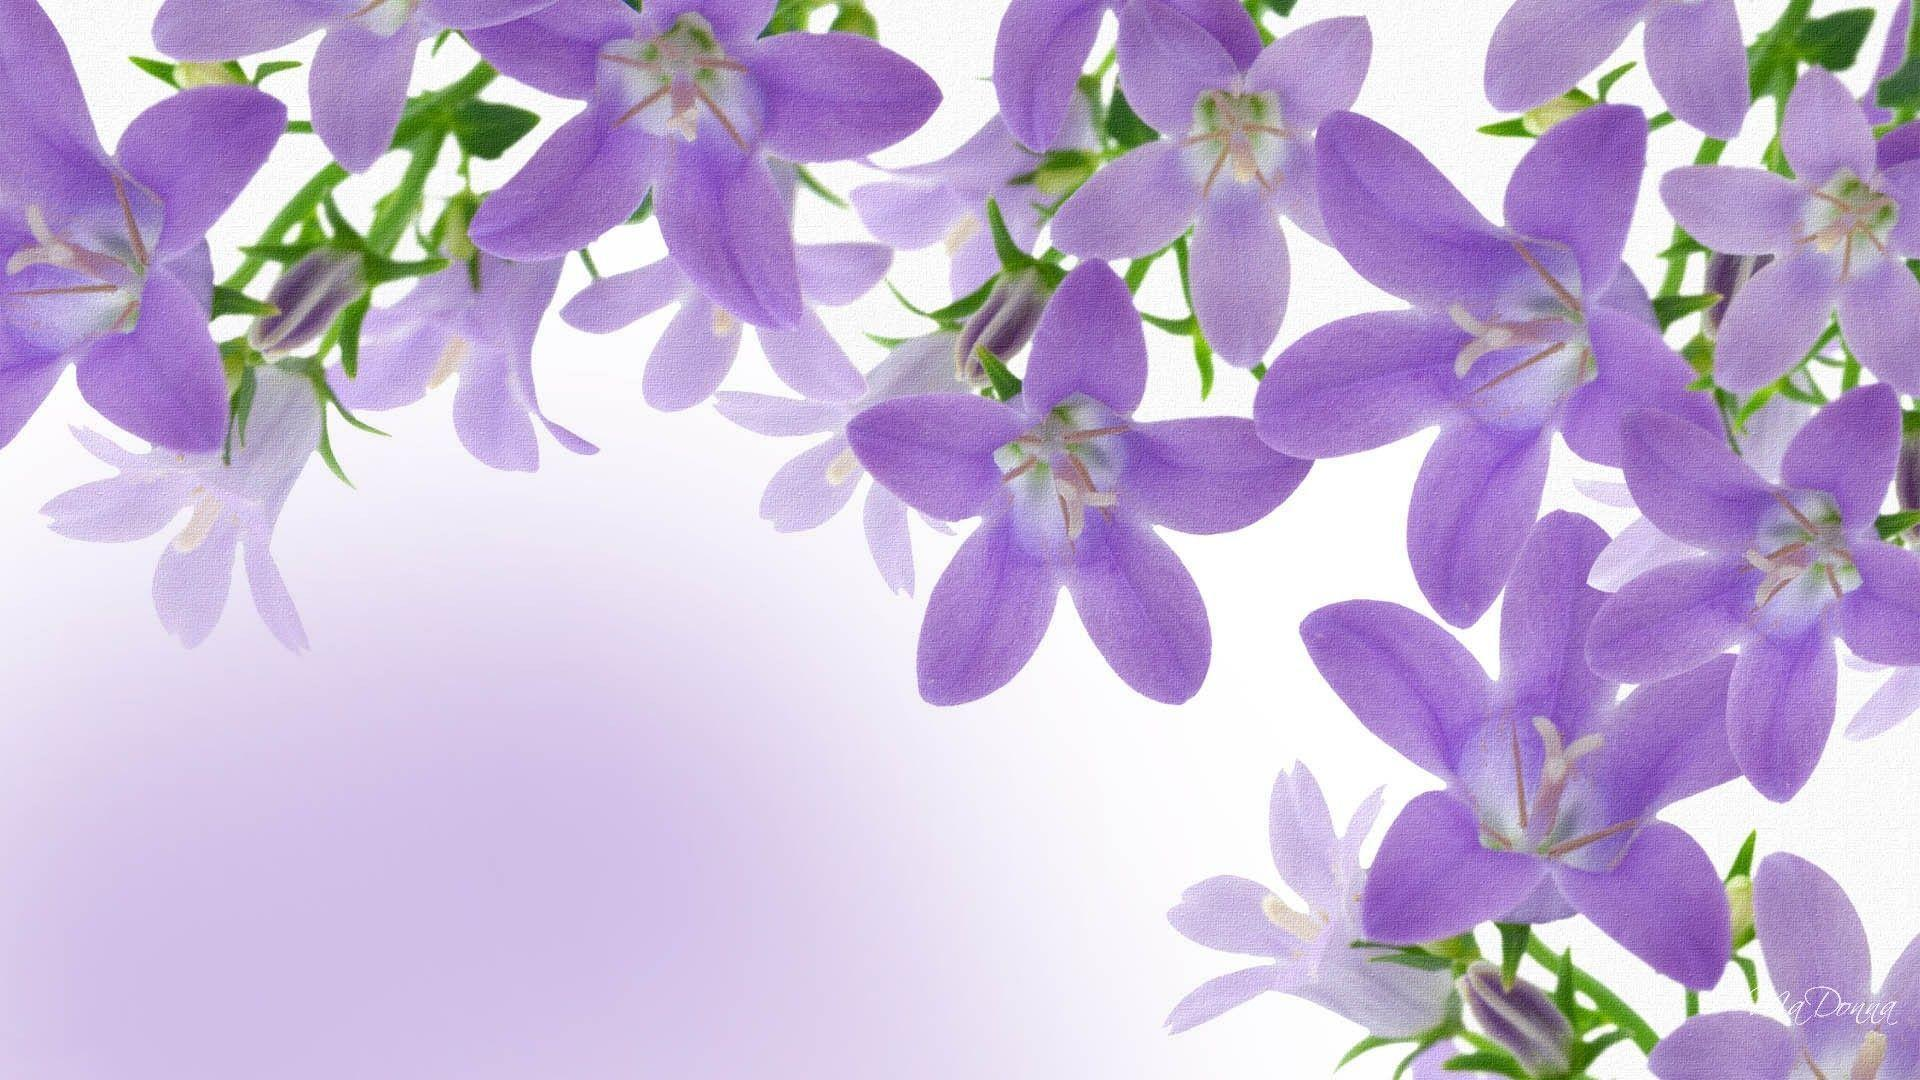 Lavendar Wallpapers - Wallpaper Cave